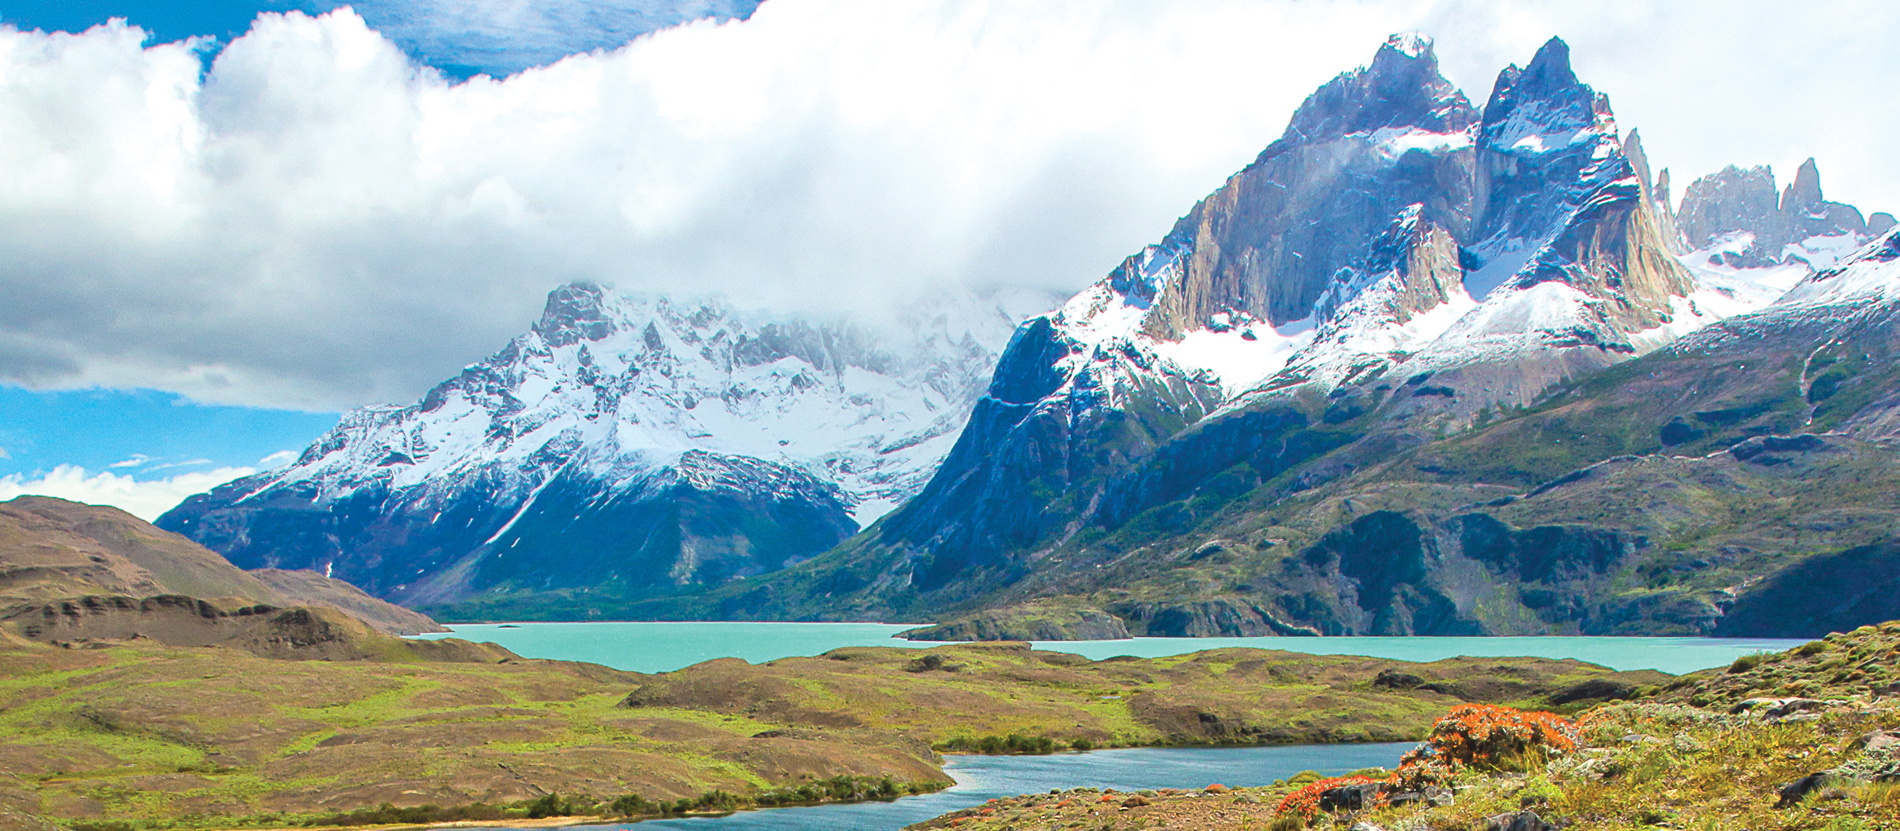 Patagonia South America >> Patagonia Hiking Trip Trekking Tour 2019 National